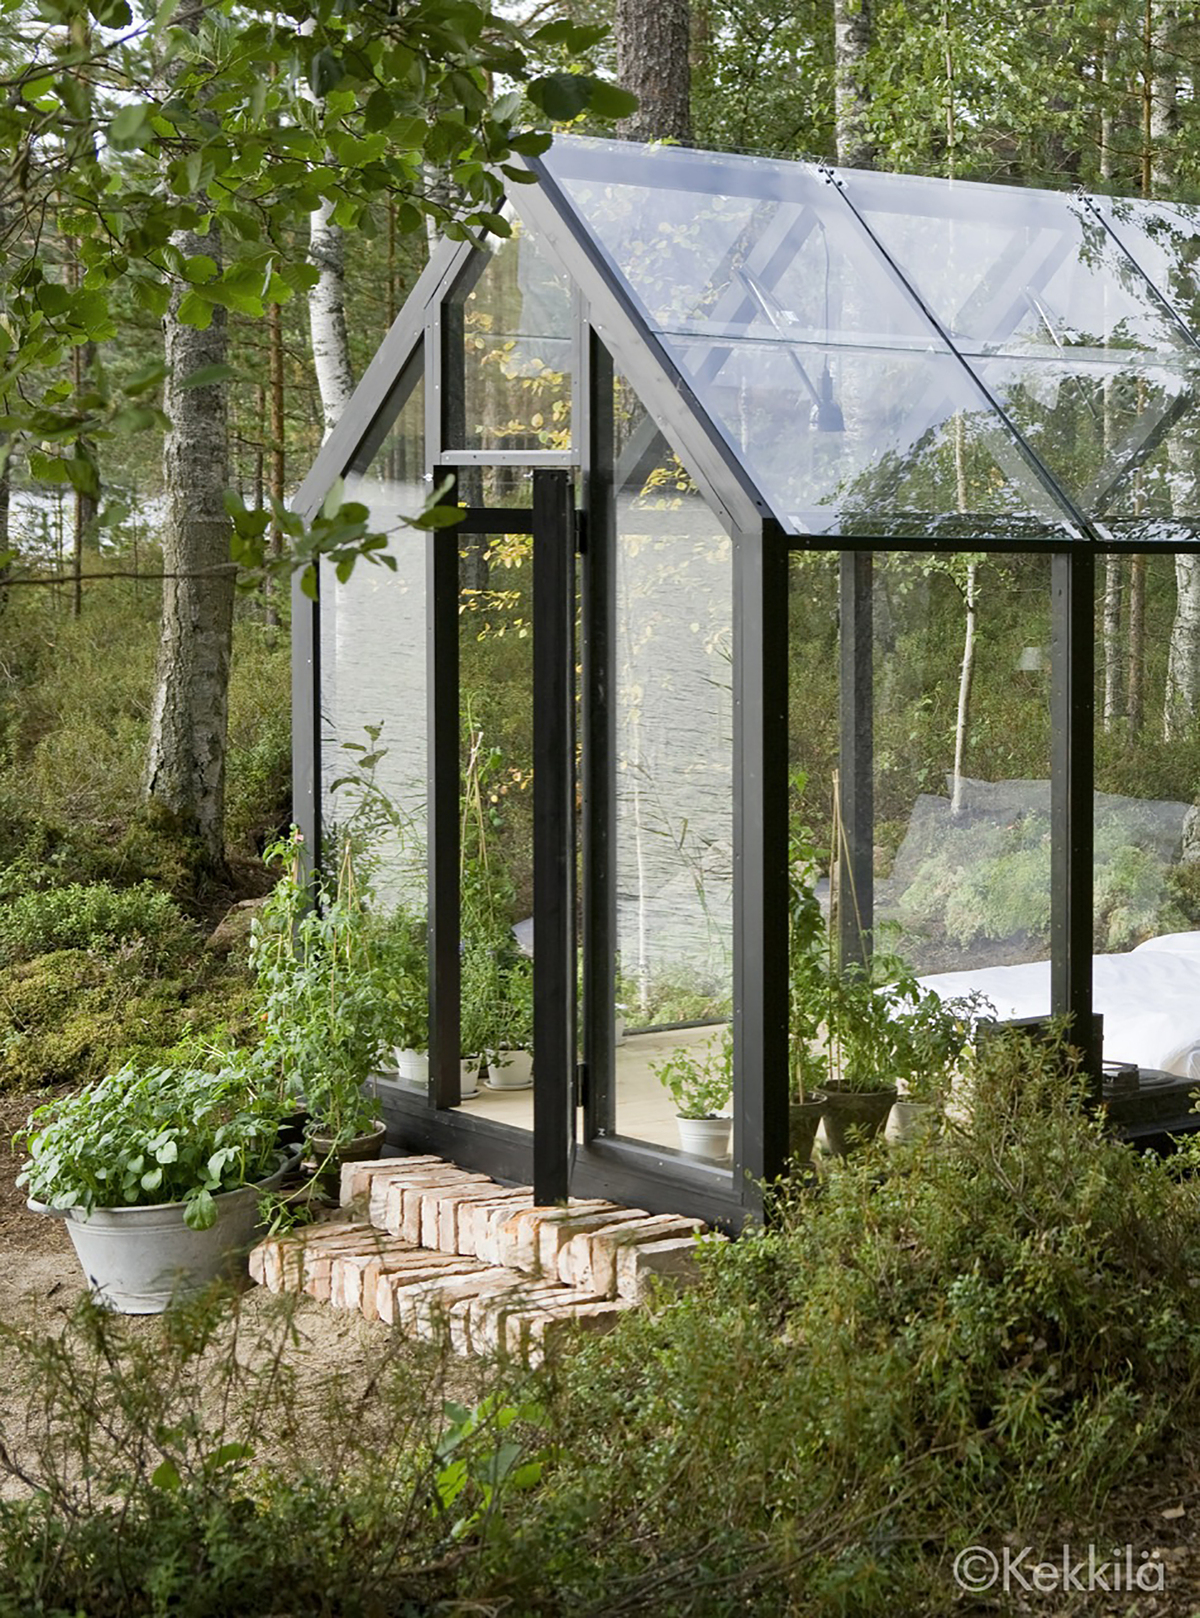 Combine Garden Shed and Green House Get a Fairytalelike Dwelling